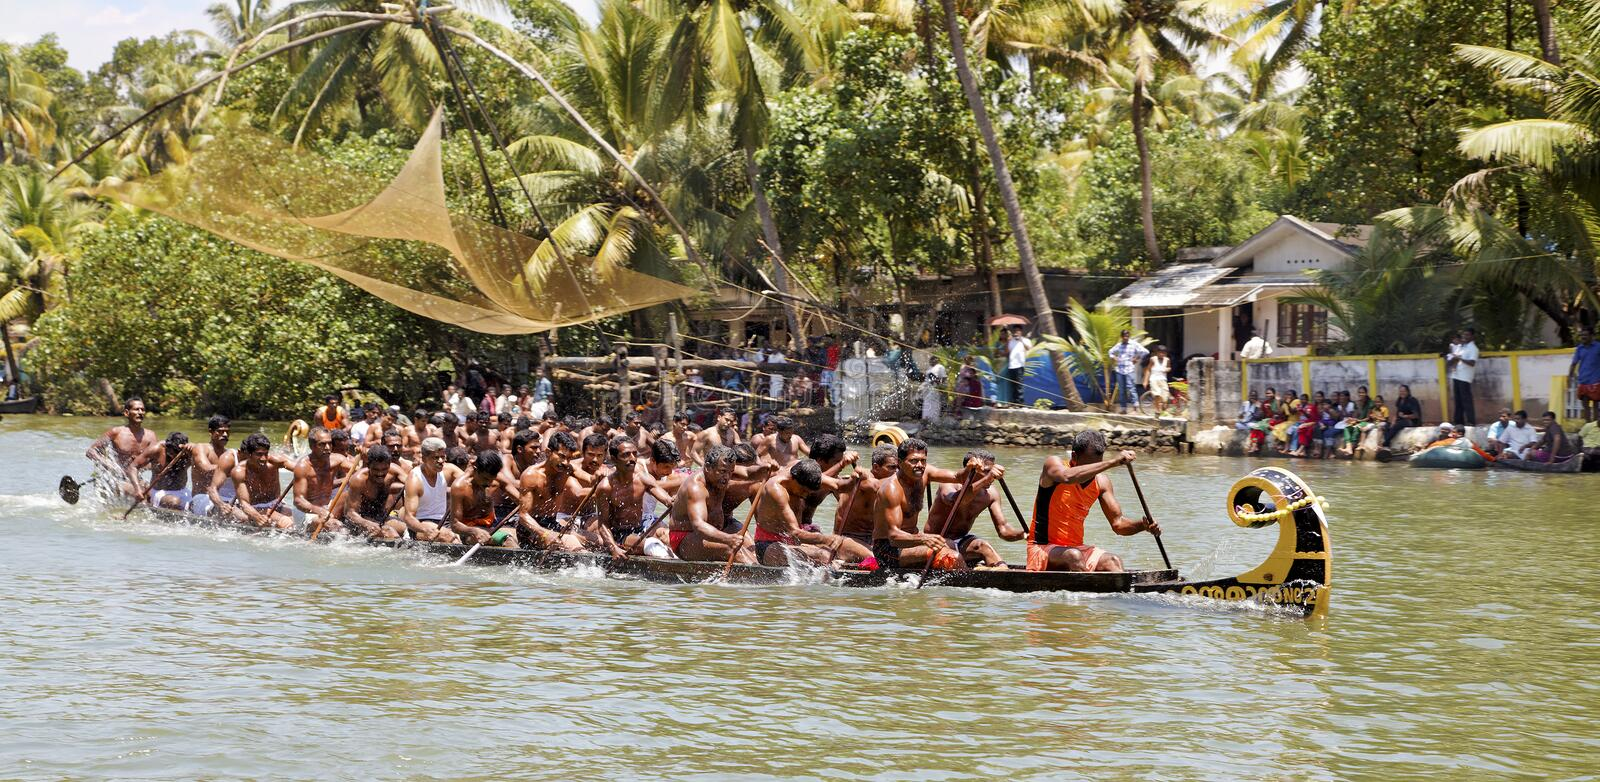 Snake boat race Kerala half way to finish line royalty free stock photos